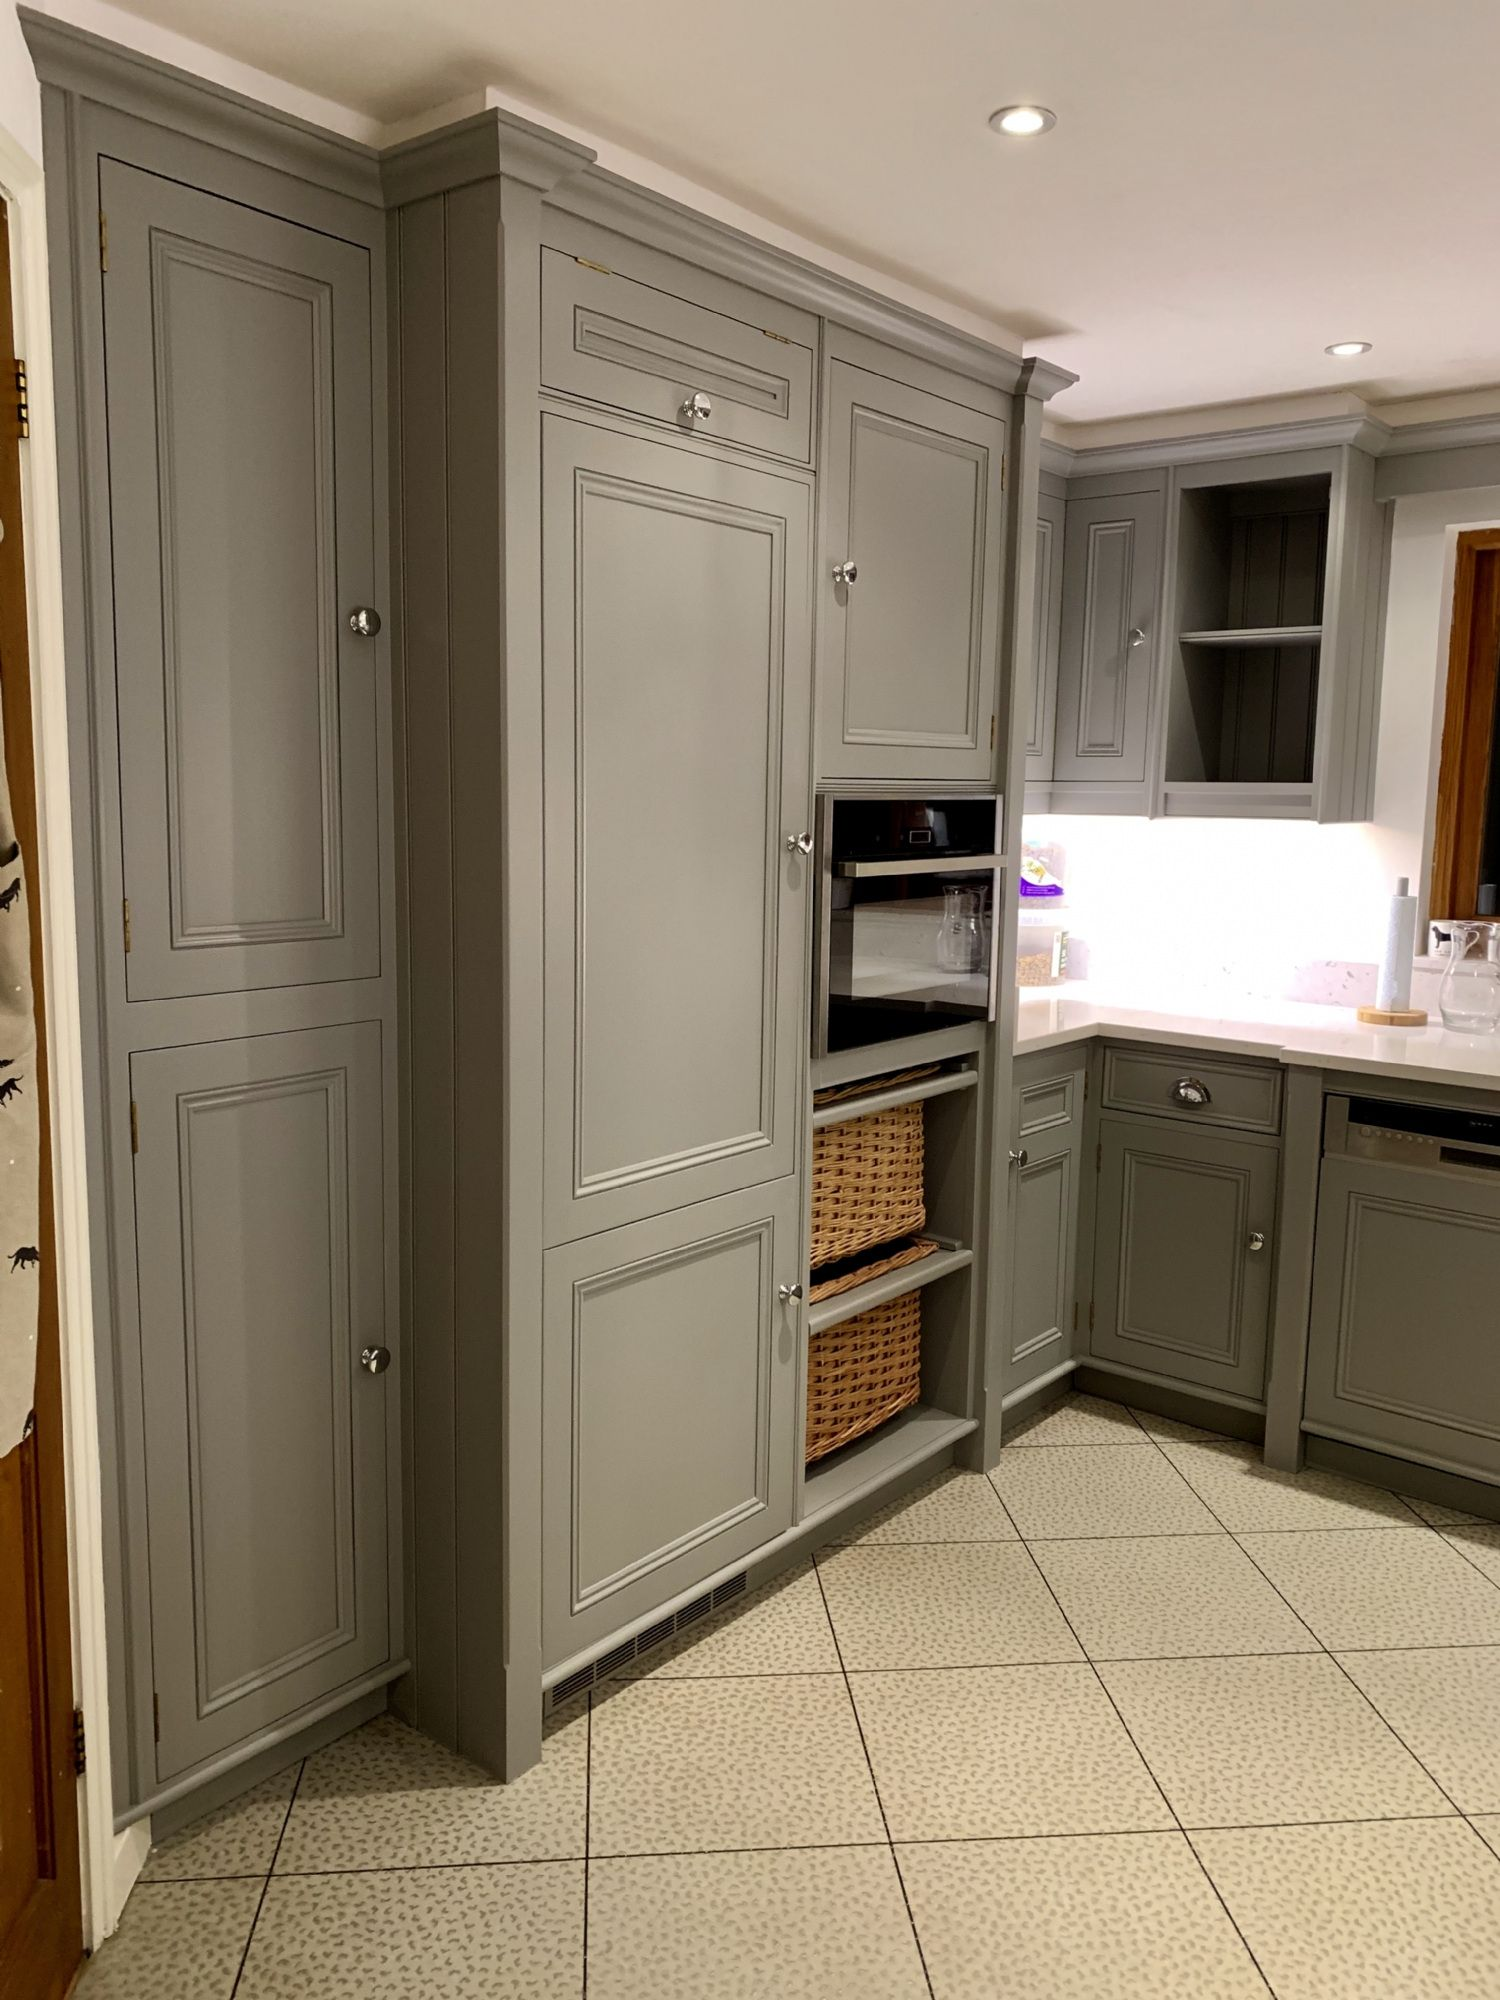 Repainting Kitchen Cabinets Cost Uk 2021 Kitchen Cabinets Repainting Kitchen Cabinets Cost Of Kitchen Cabinets